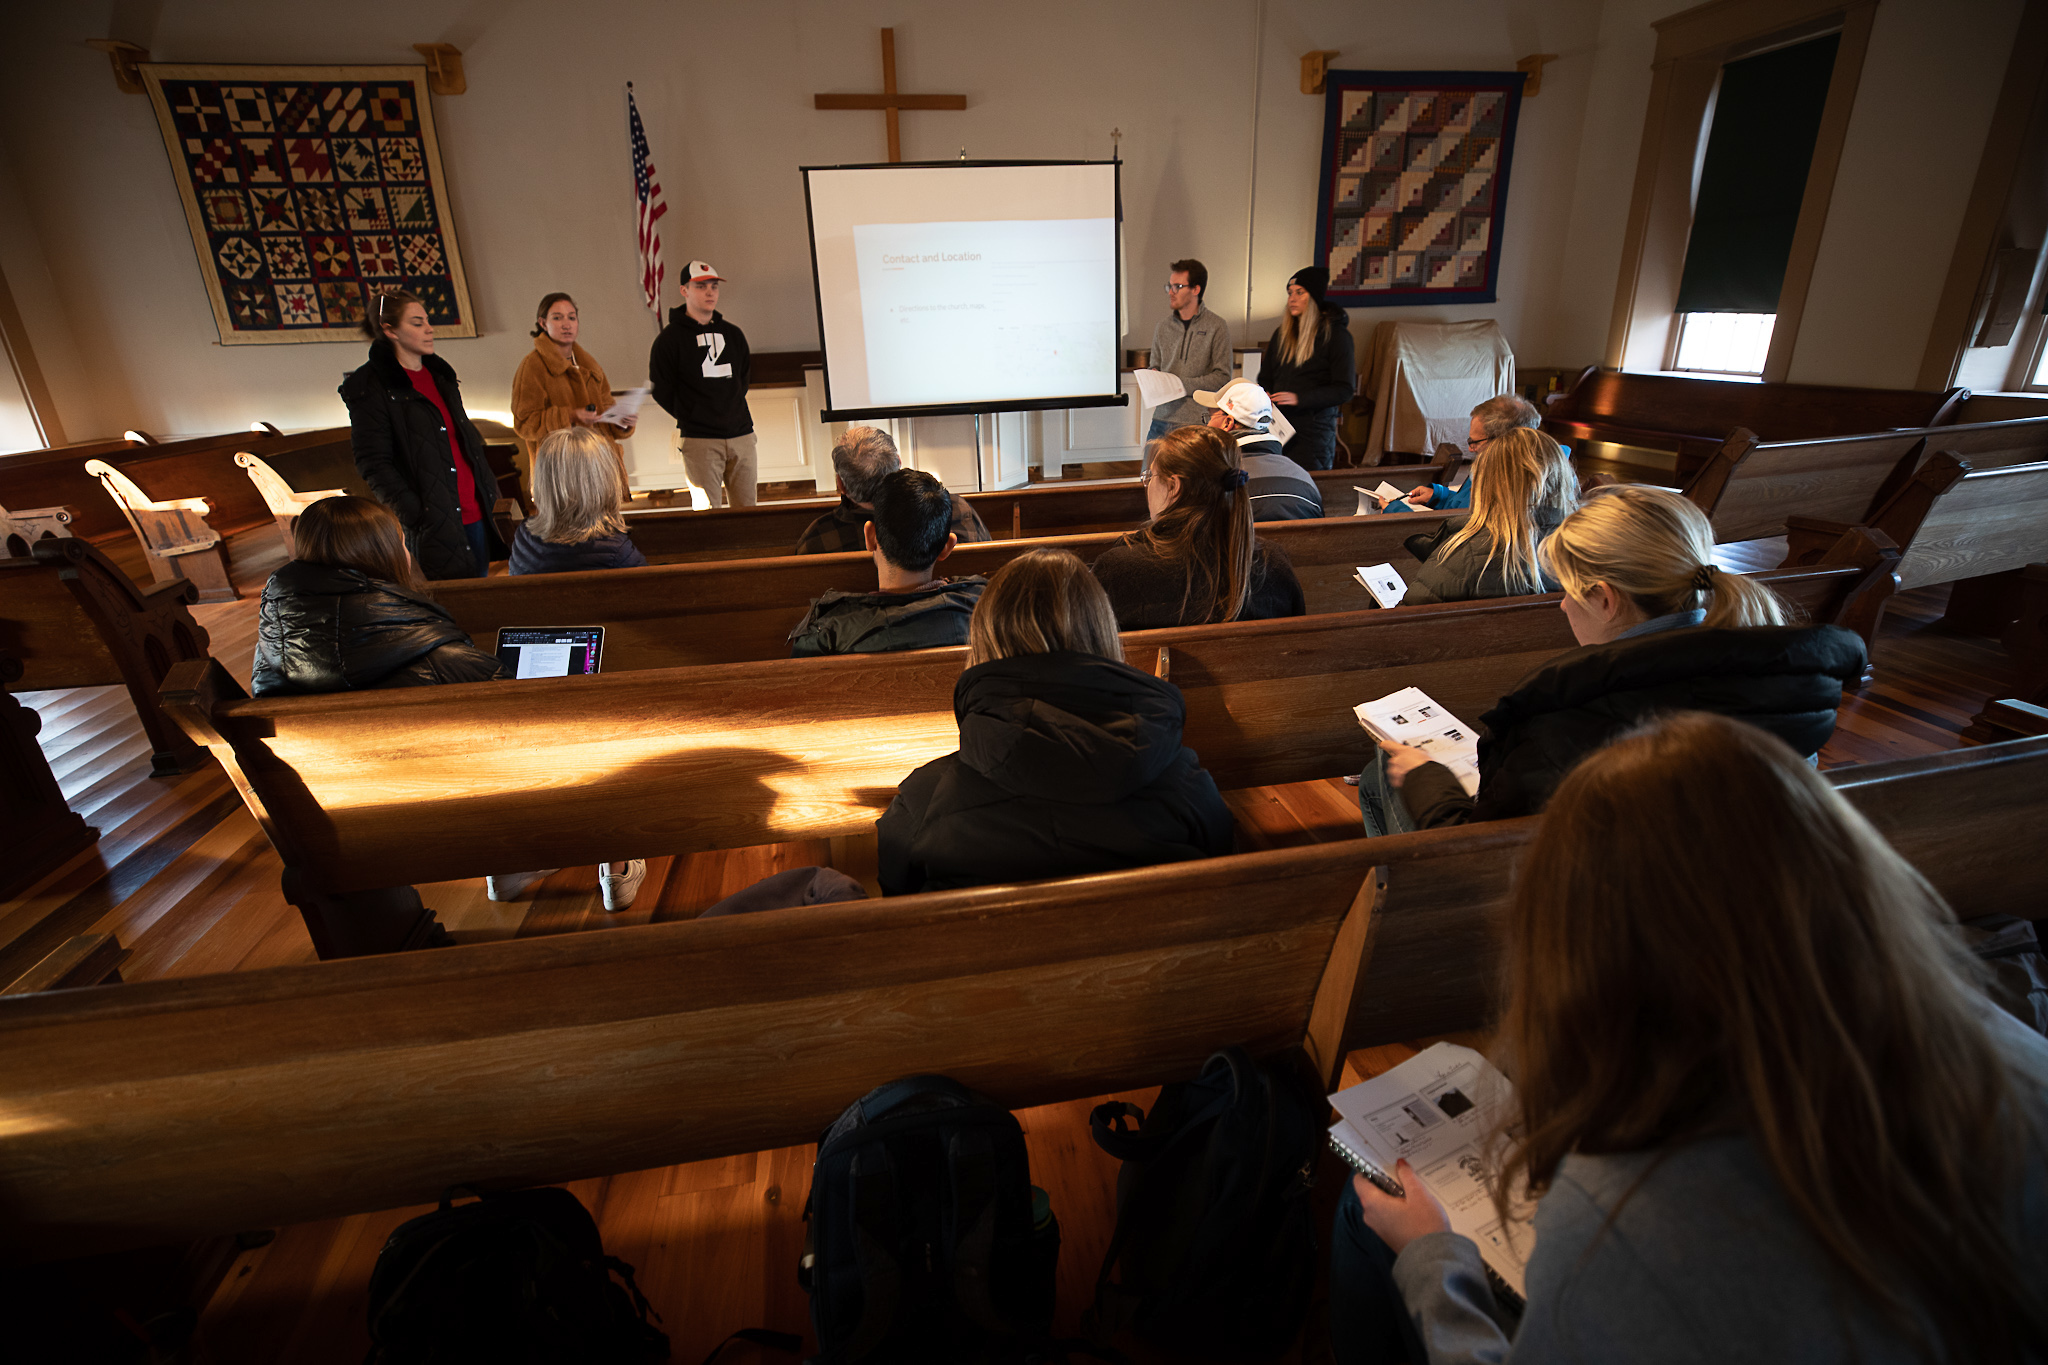 Miami students present ideas to HHC trustees inside the church sanctuary.